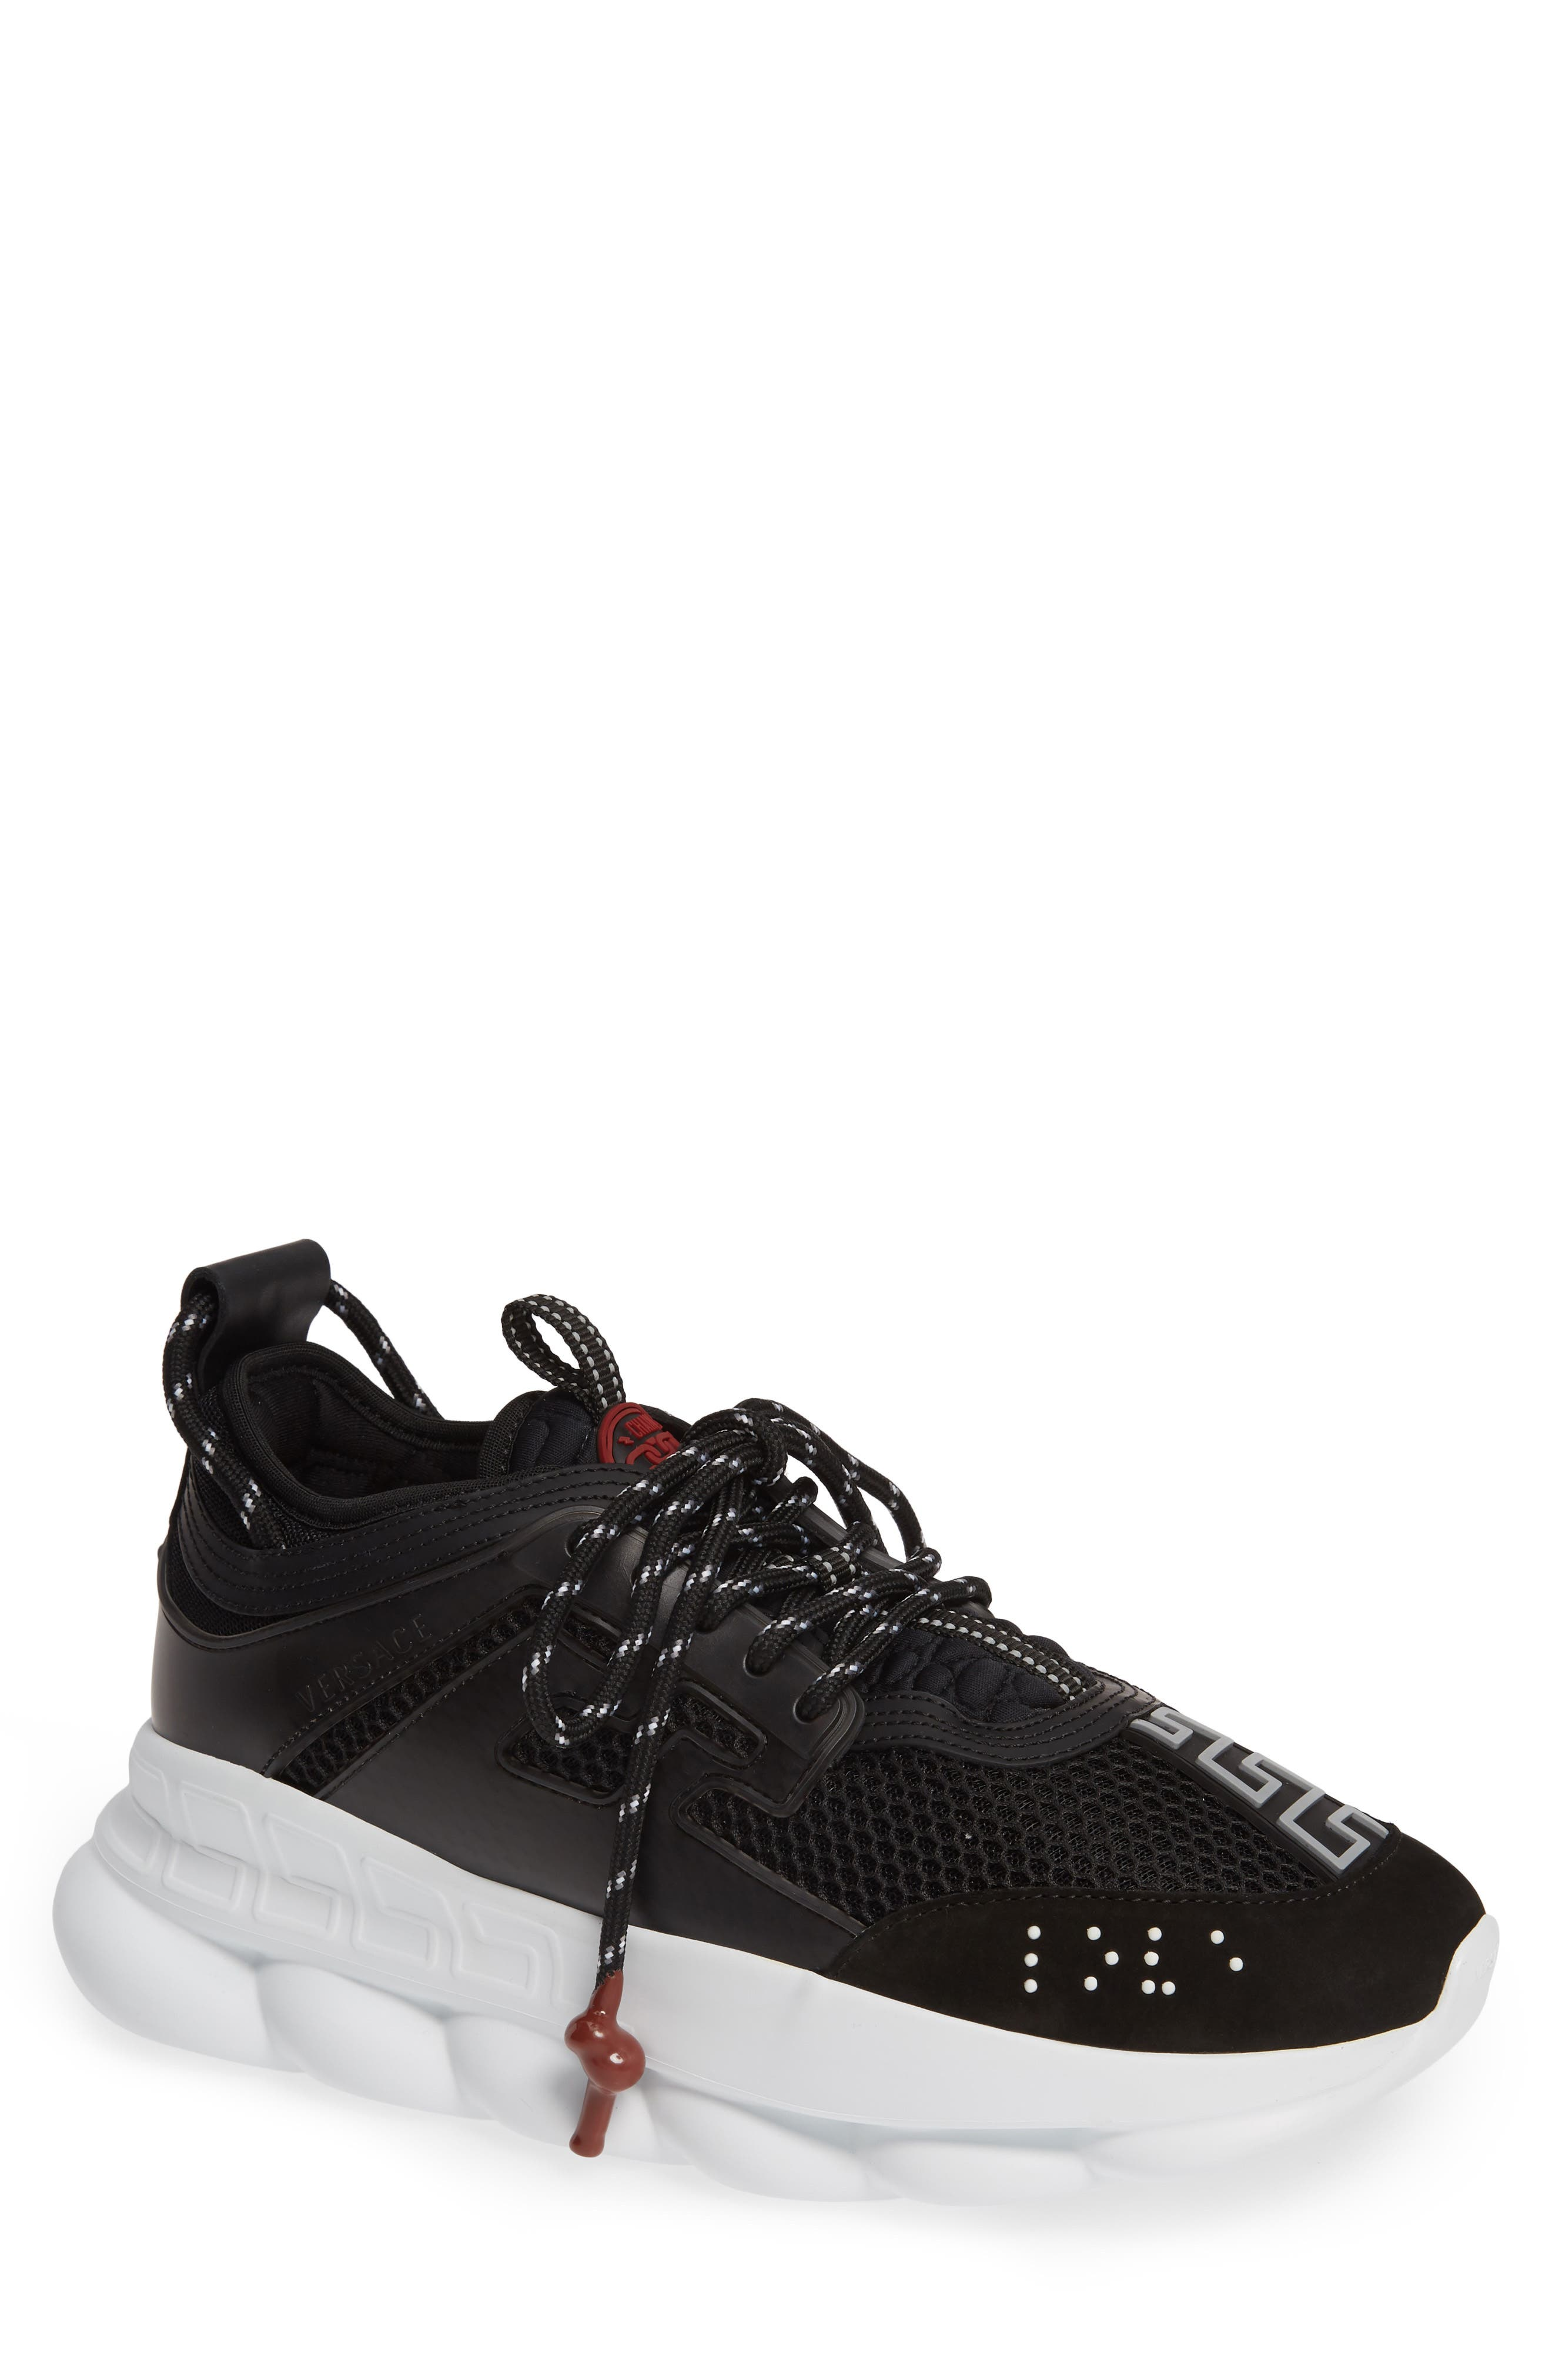 VERSACE FIRST LINE, Versace Chain Reaction Sneaker, Main thumbnail 1, color, BLACK/ GREY